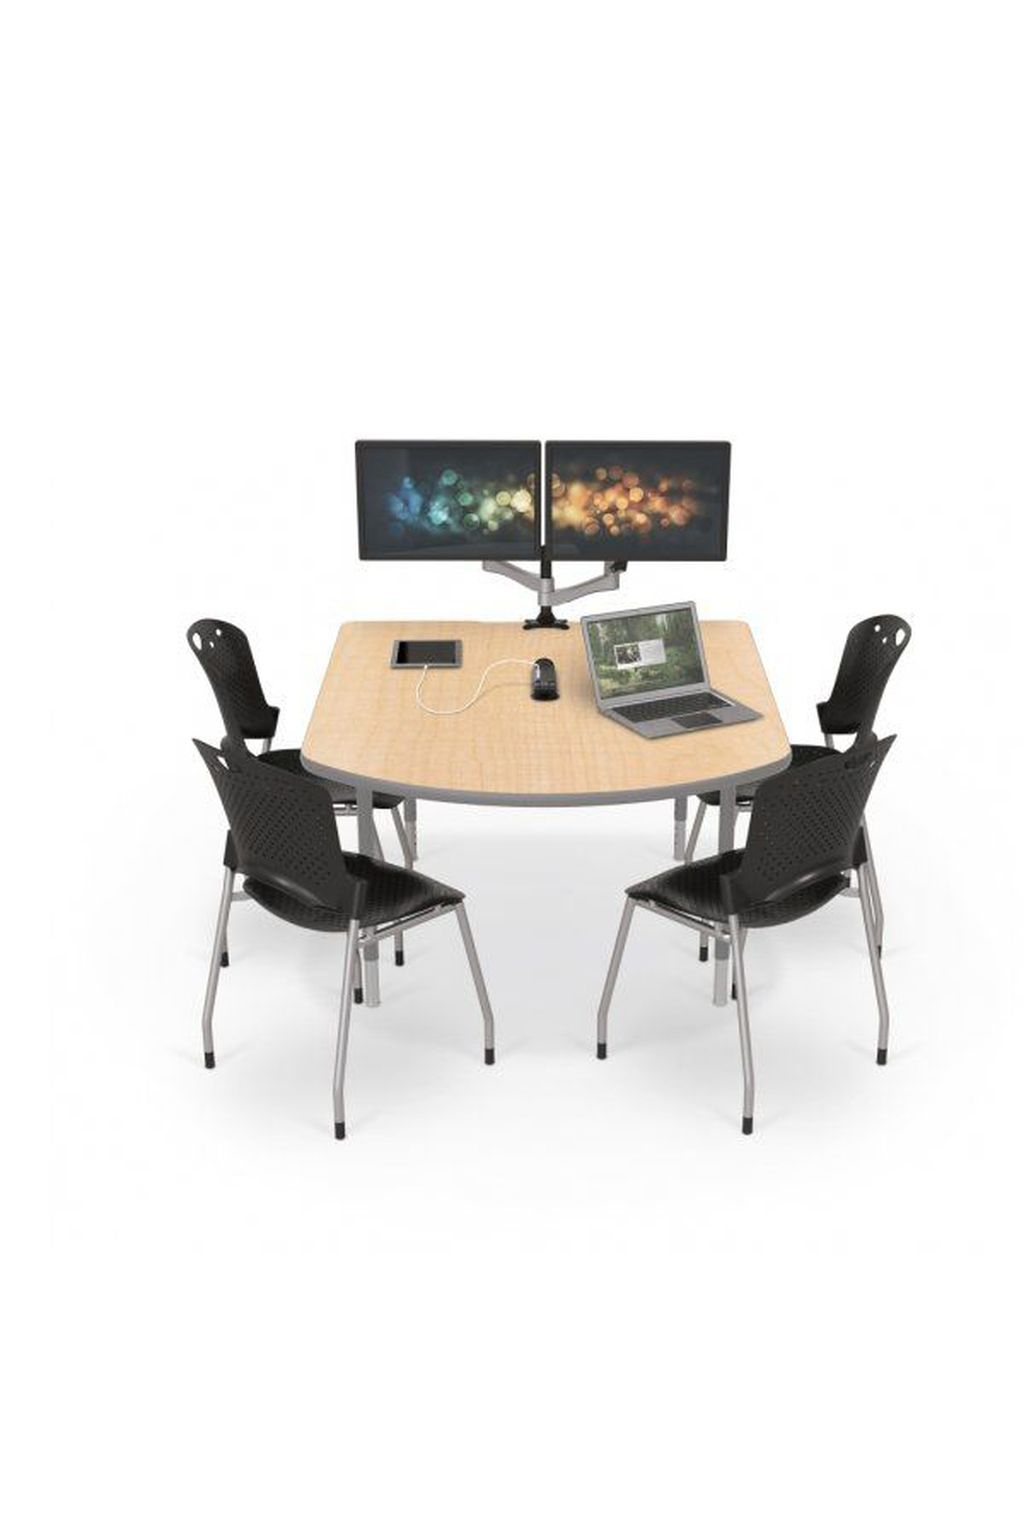 Best Functional Multimedia Table Design Ideas That Will Inspire You 29